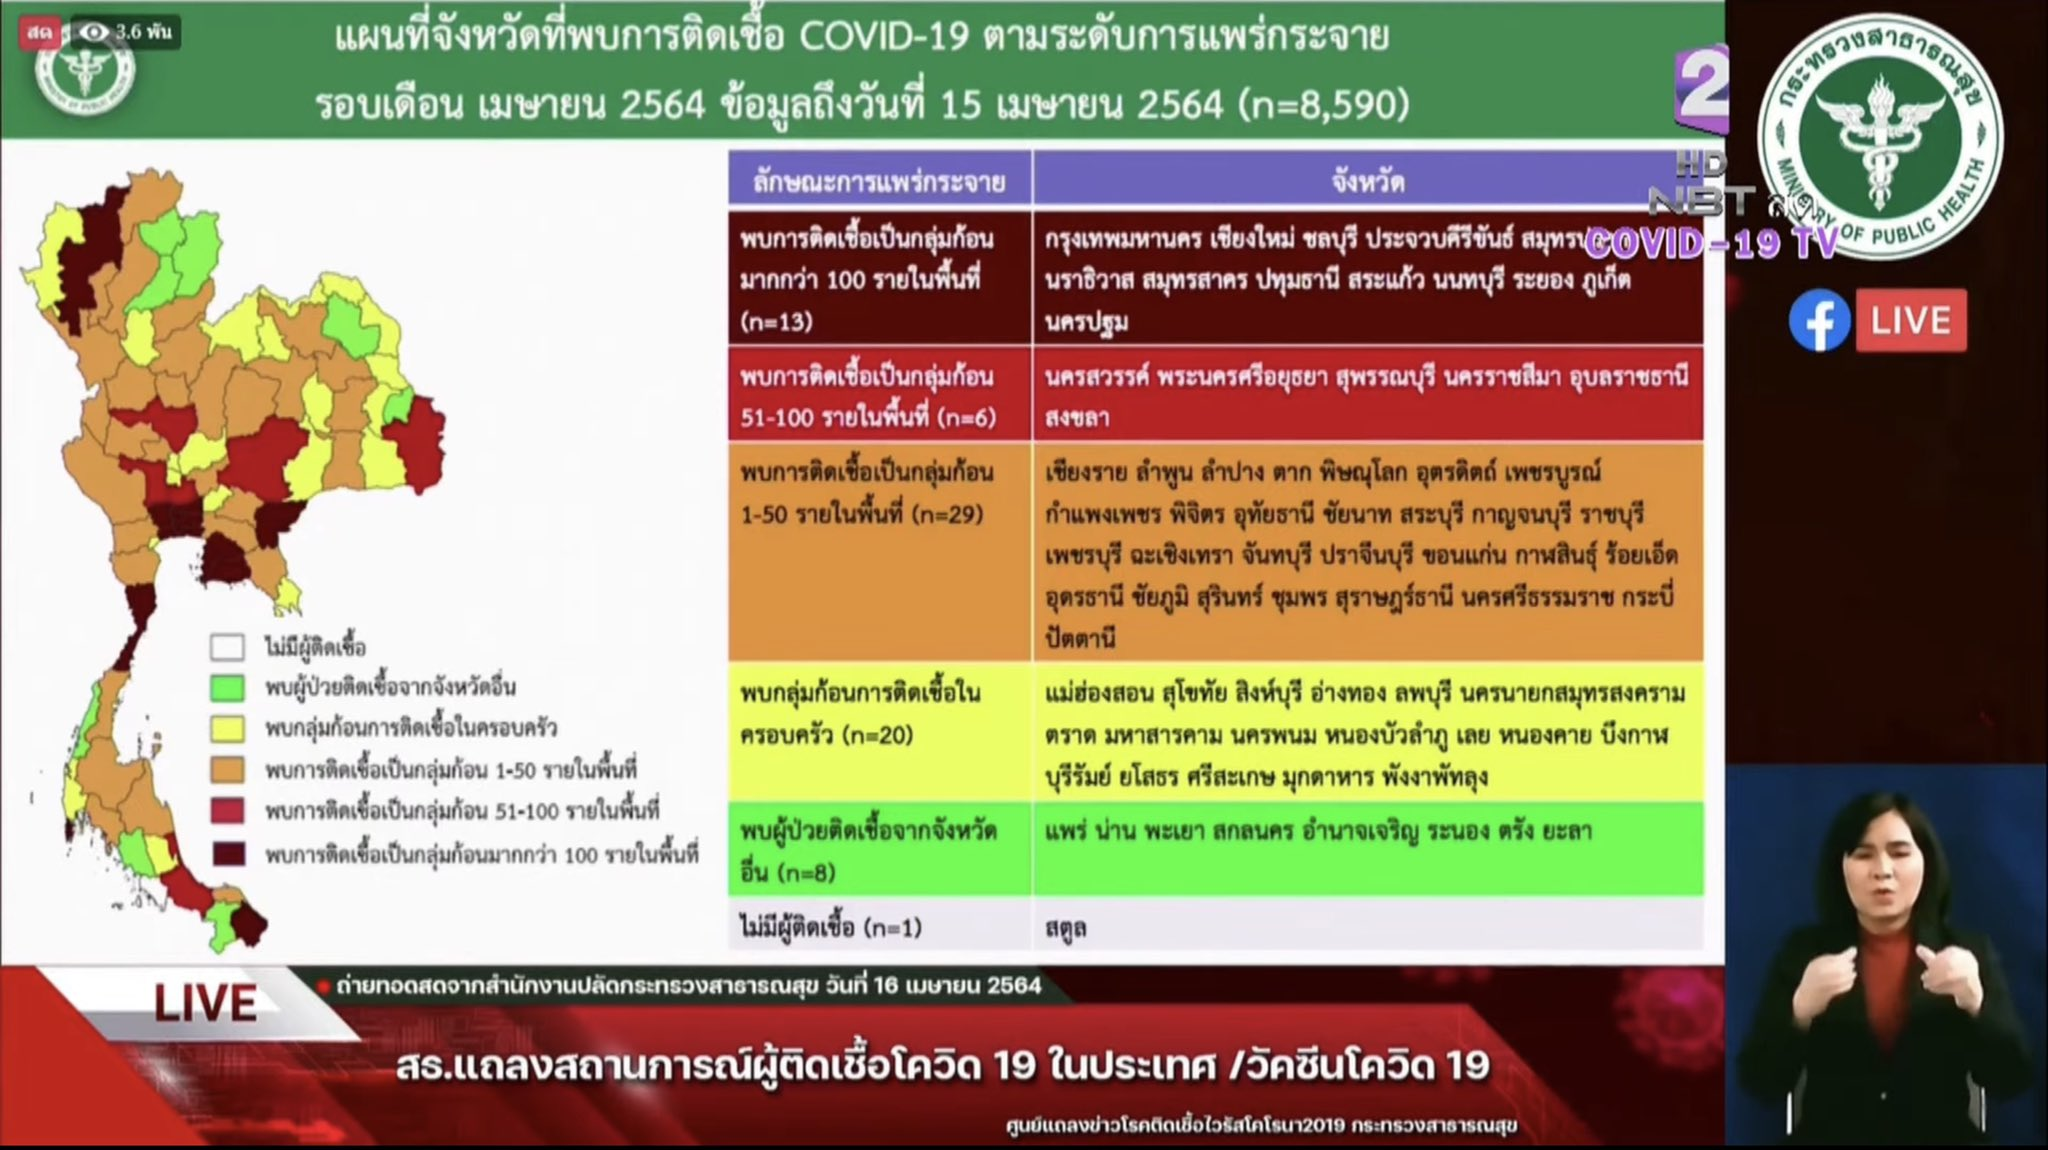 Thailand Urges Public In High-Risk Areas To Work From Home To Curb Covid-19